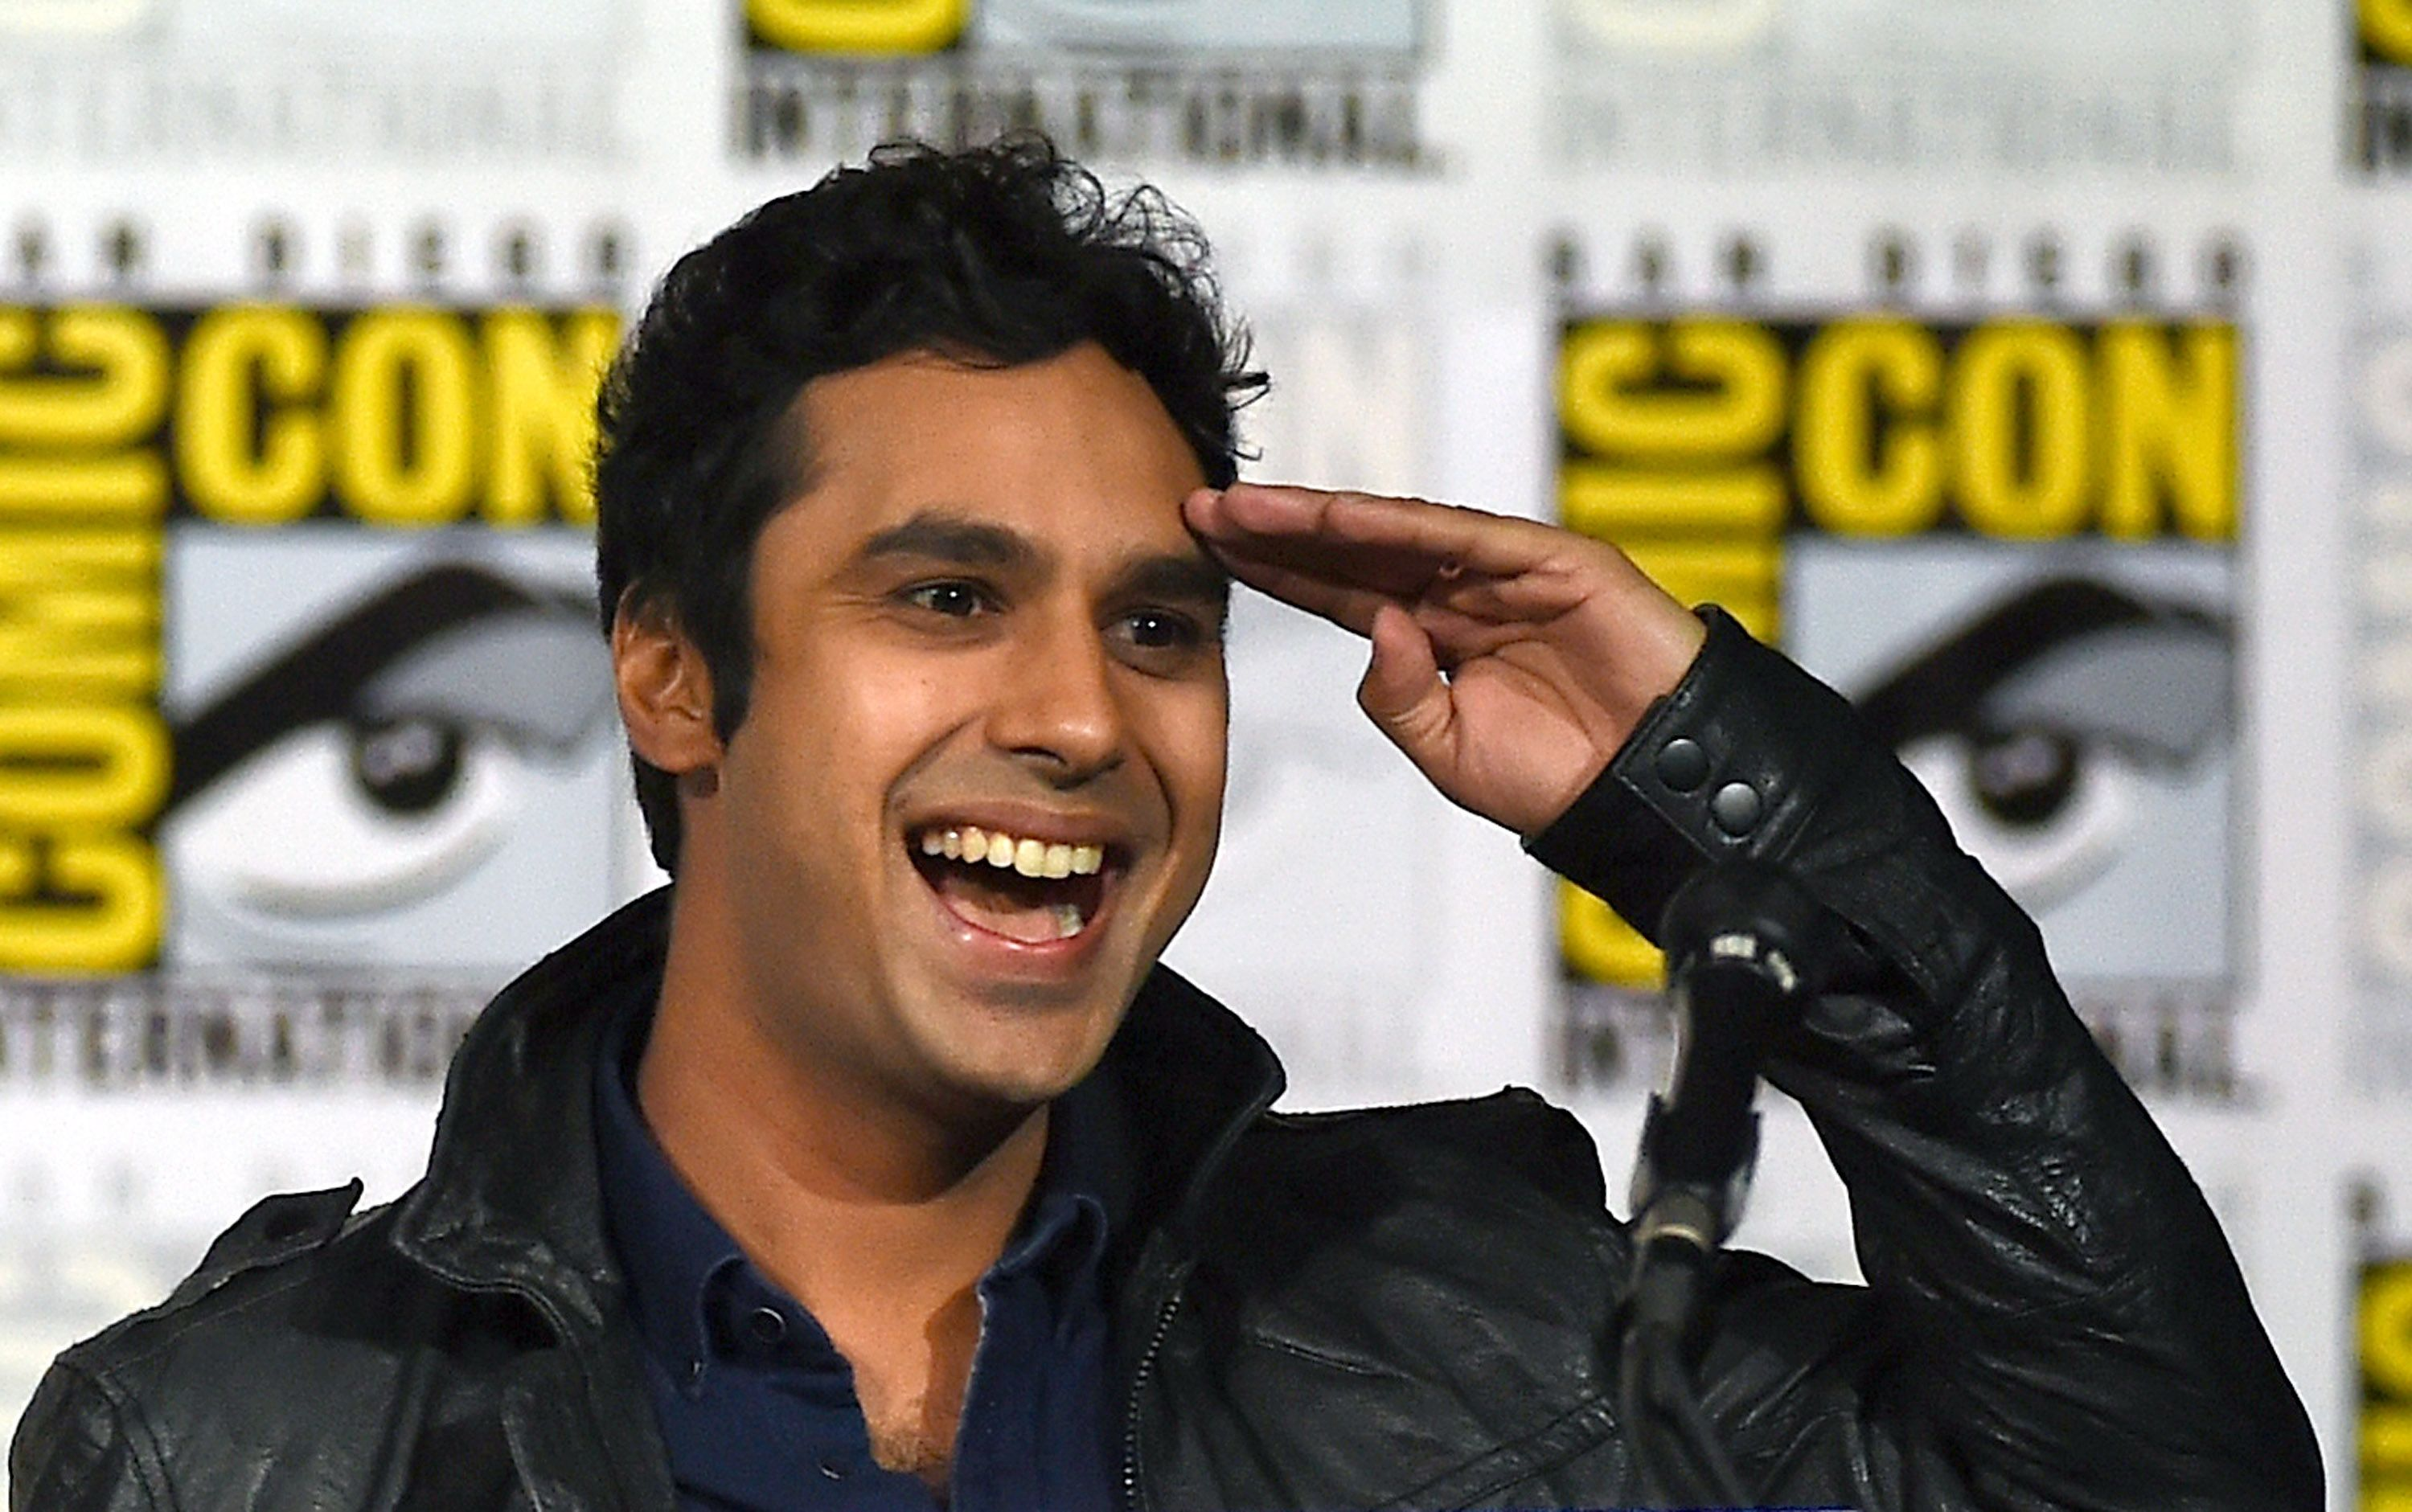 Kunal revealed how eating in the scenes actually went / Getty Images